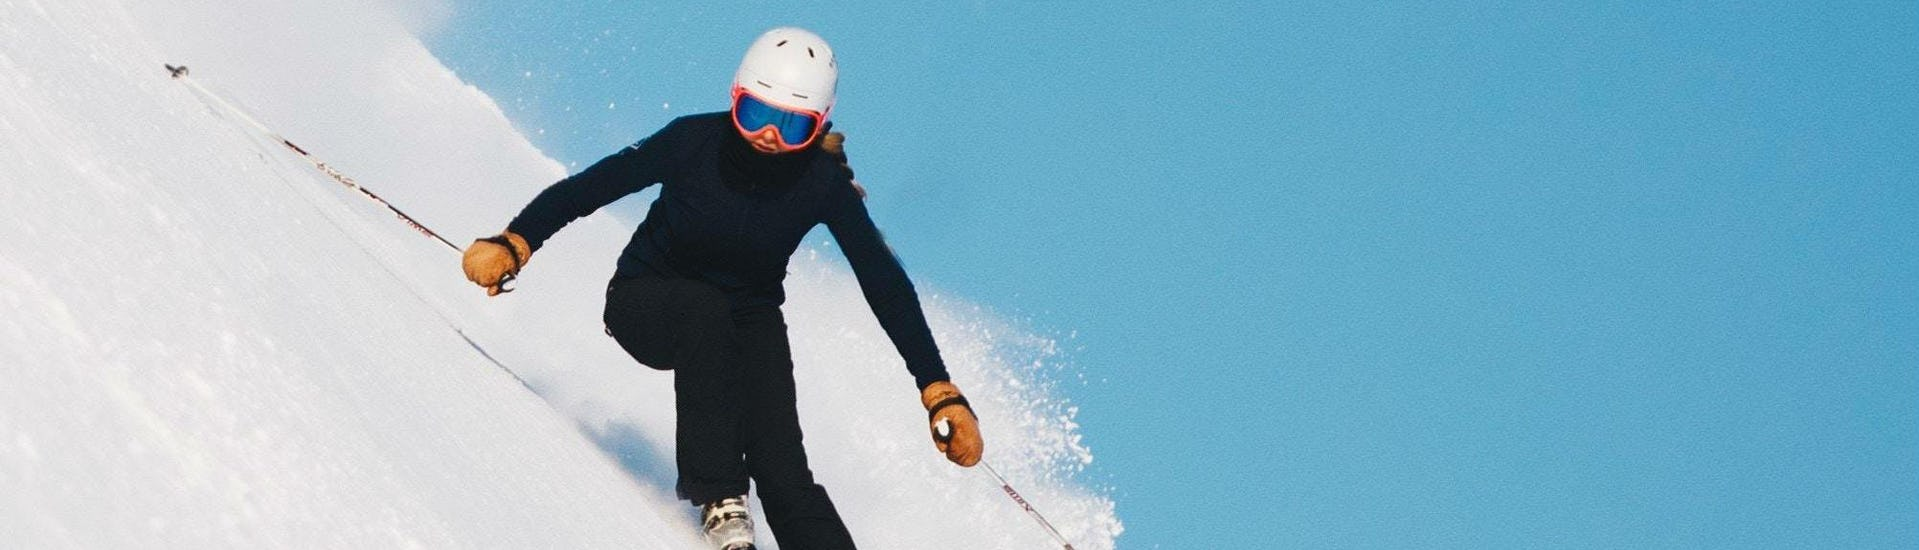 Skier proves his ability on the steep slope during his Private Ski Lessons for Adults - Megève - All Levels with the ski school Skibex.